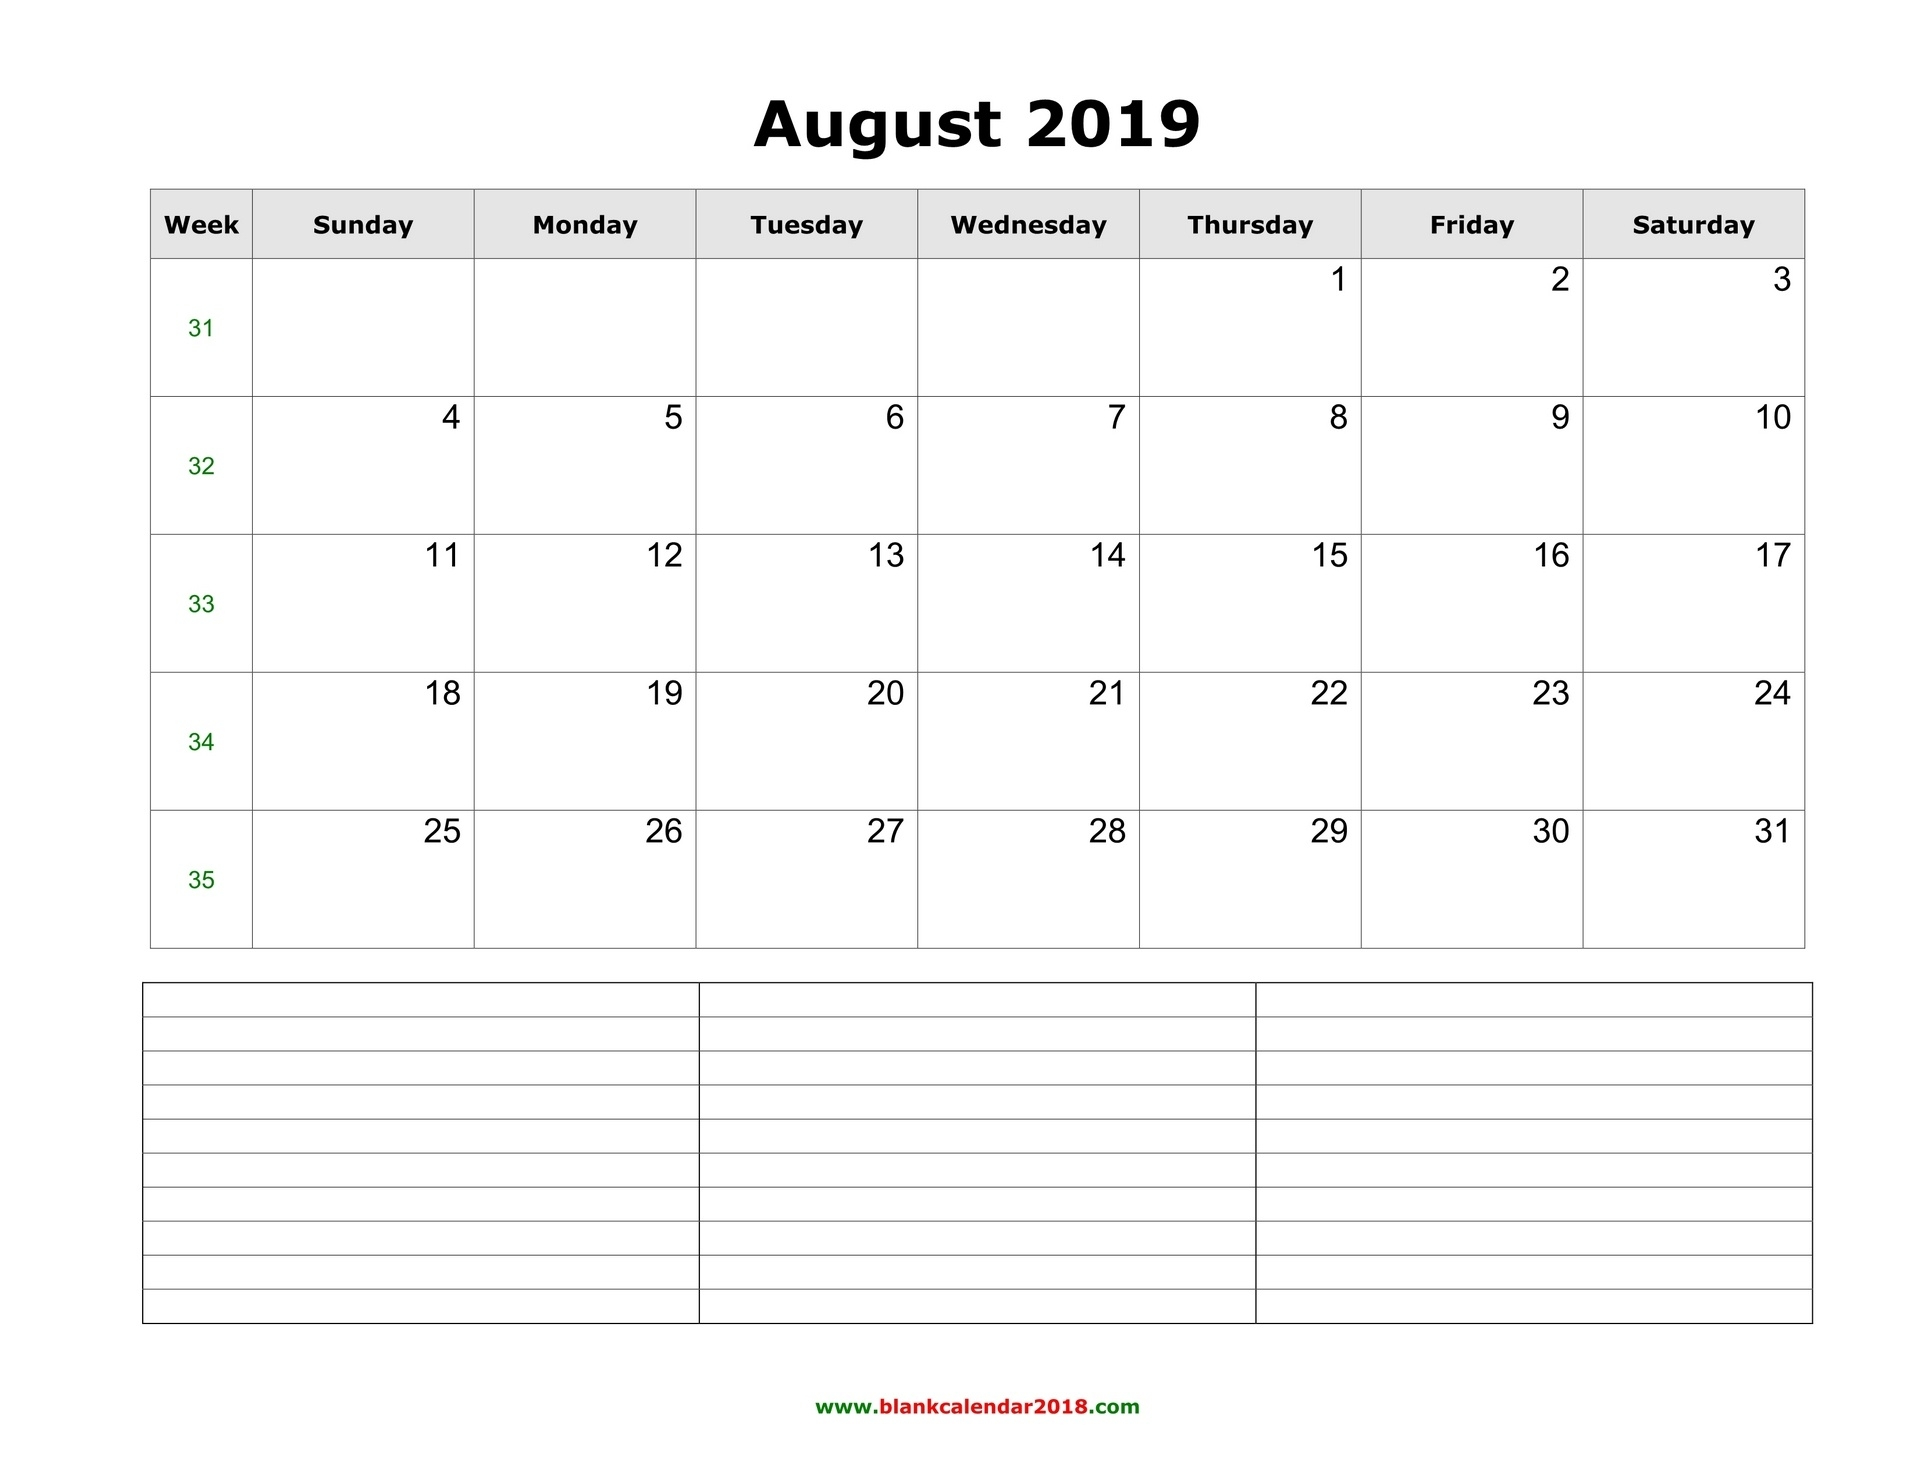 Blank Calendar For August 2019_Blank Calendar 4 Weeks